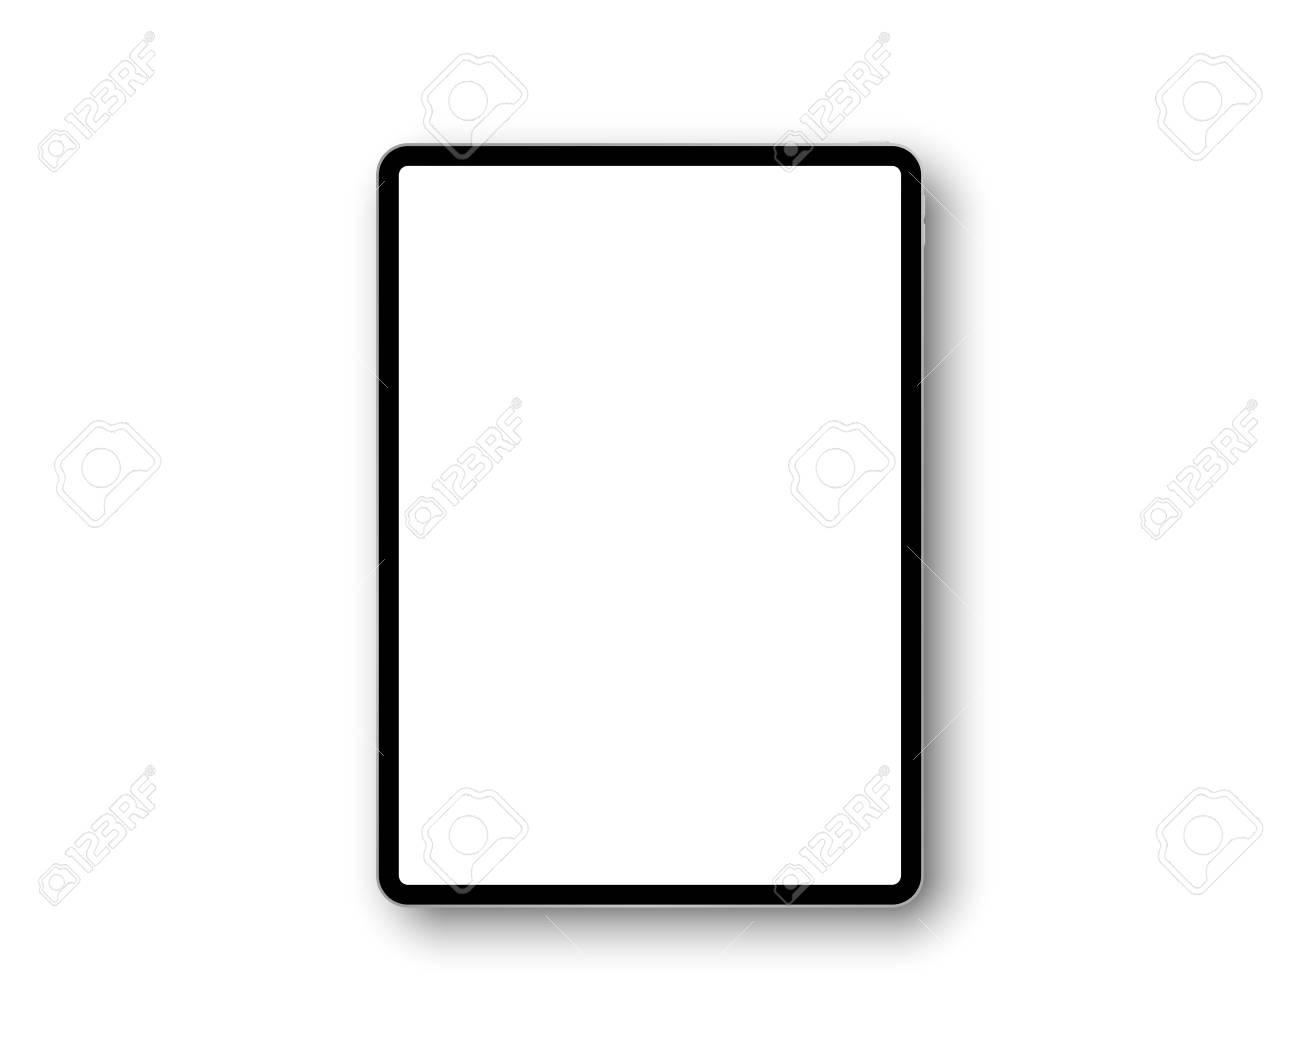 Device ipad pro with 11 inch display. Template frame with shadow. Tablet pc, mobile device. Multi-touch gadget. Template for design and presentation. Vector ipad illustration - 123115137